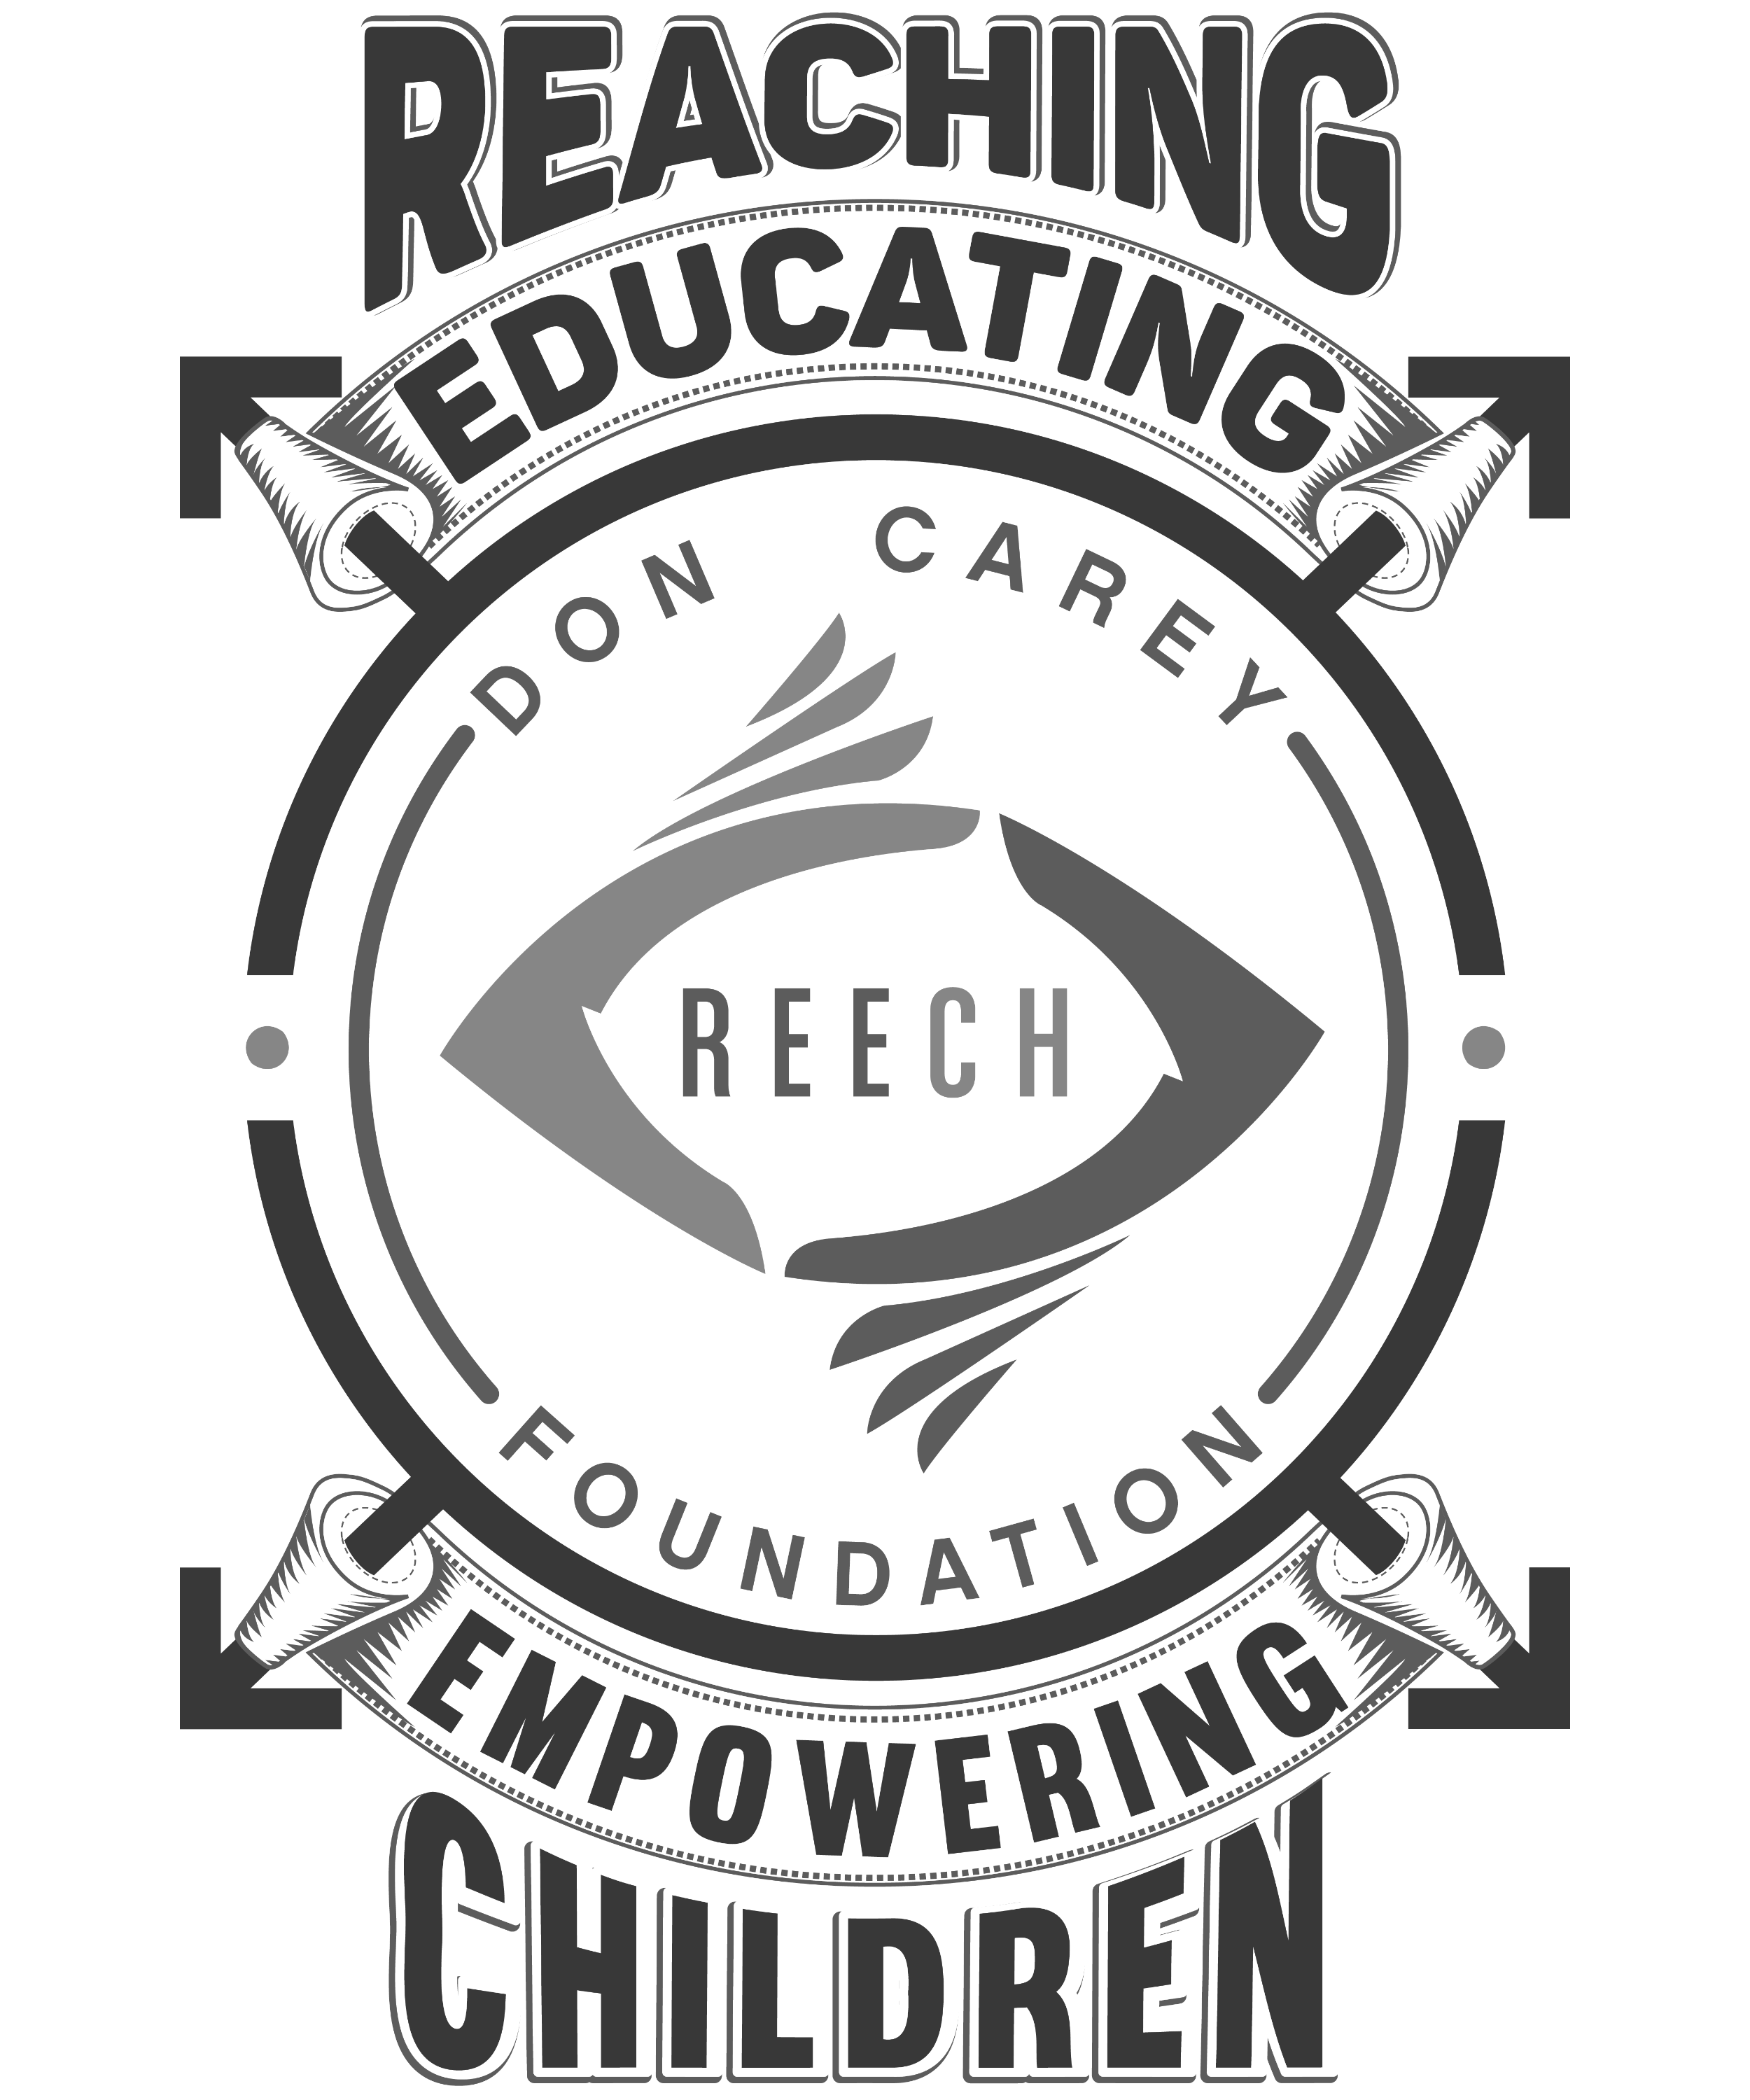 Don Carey REECH Foundation